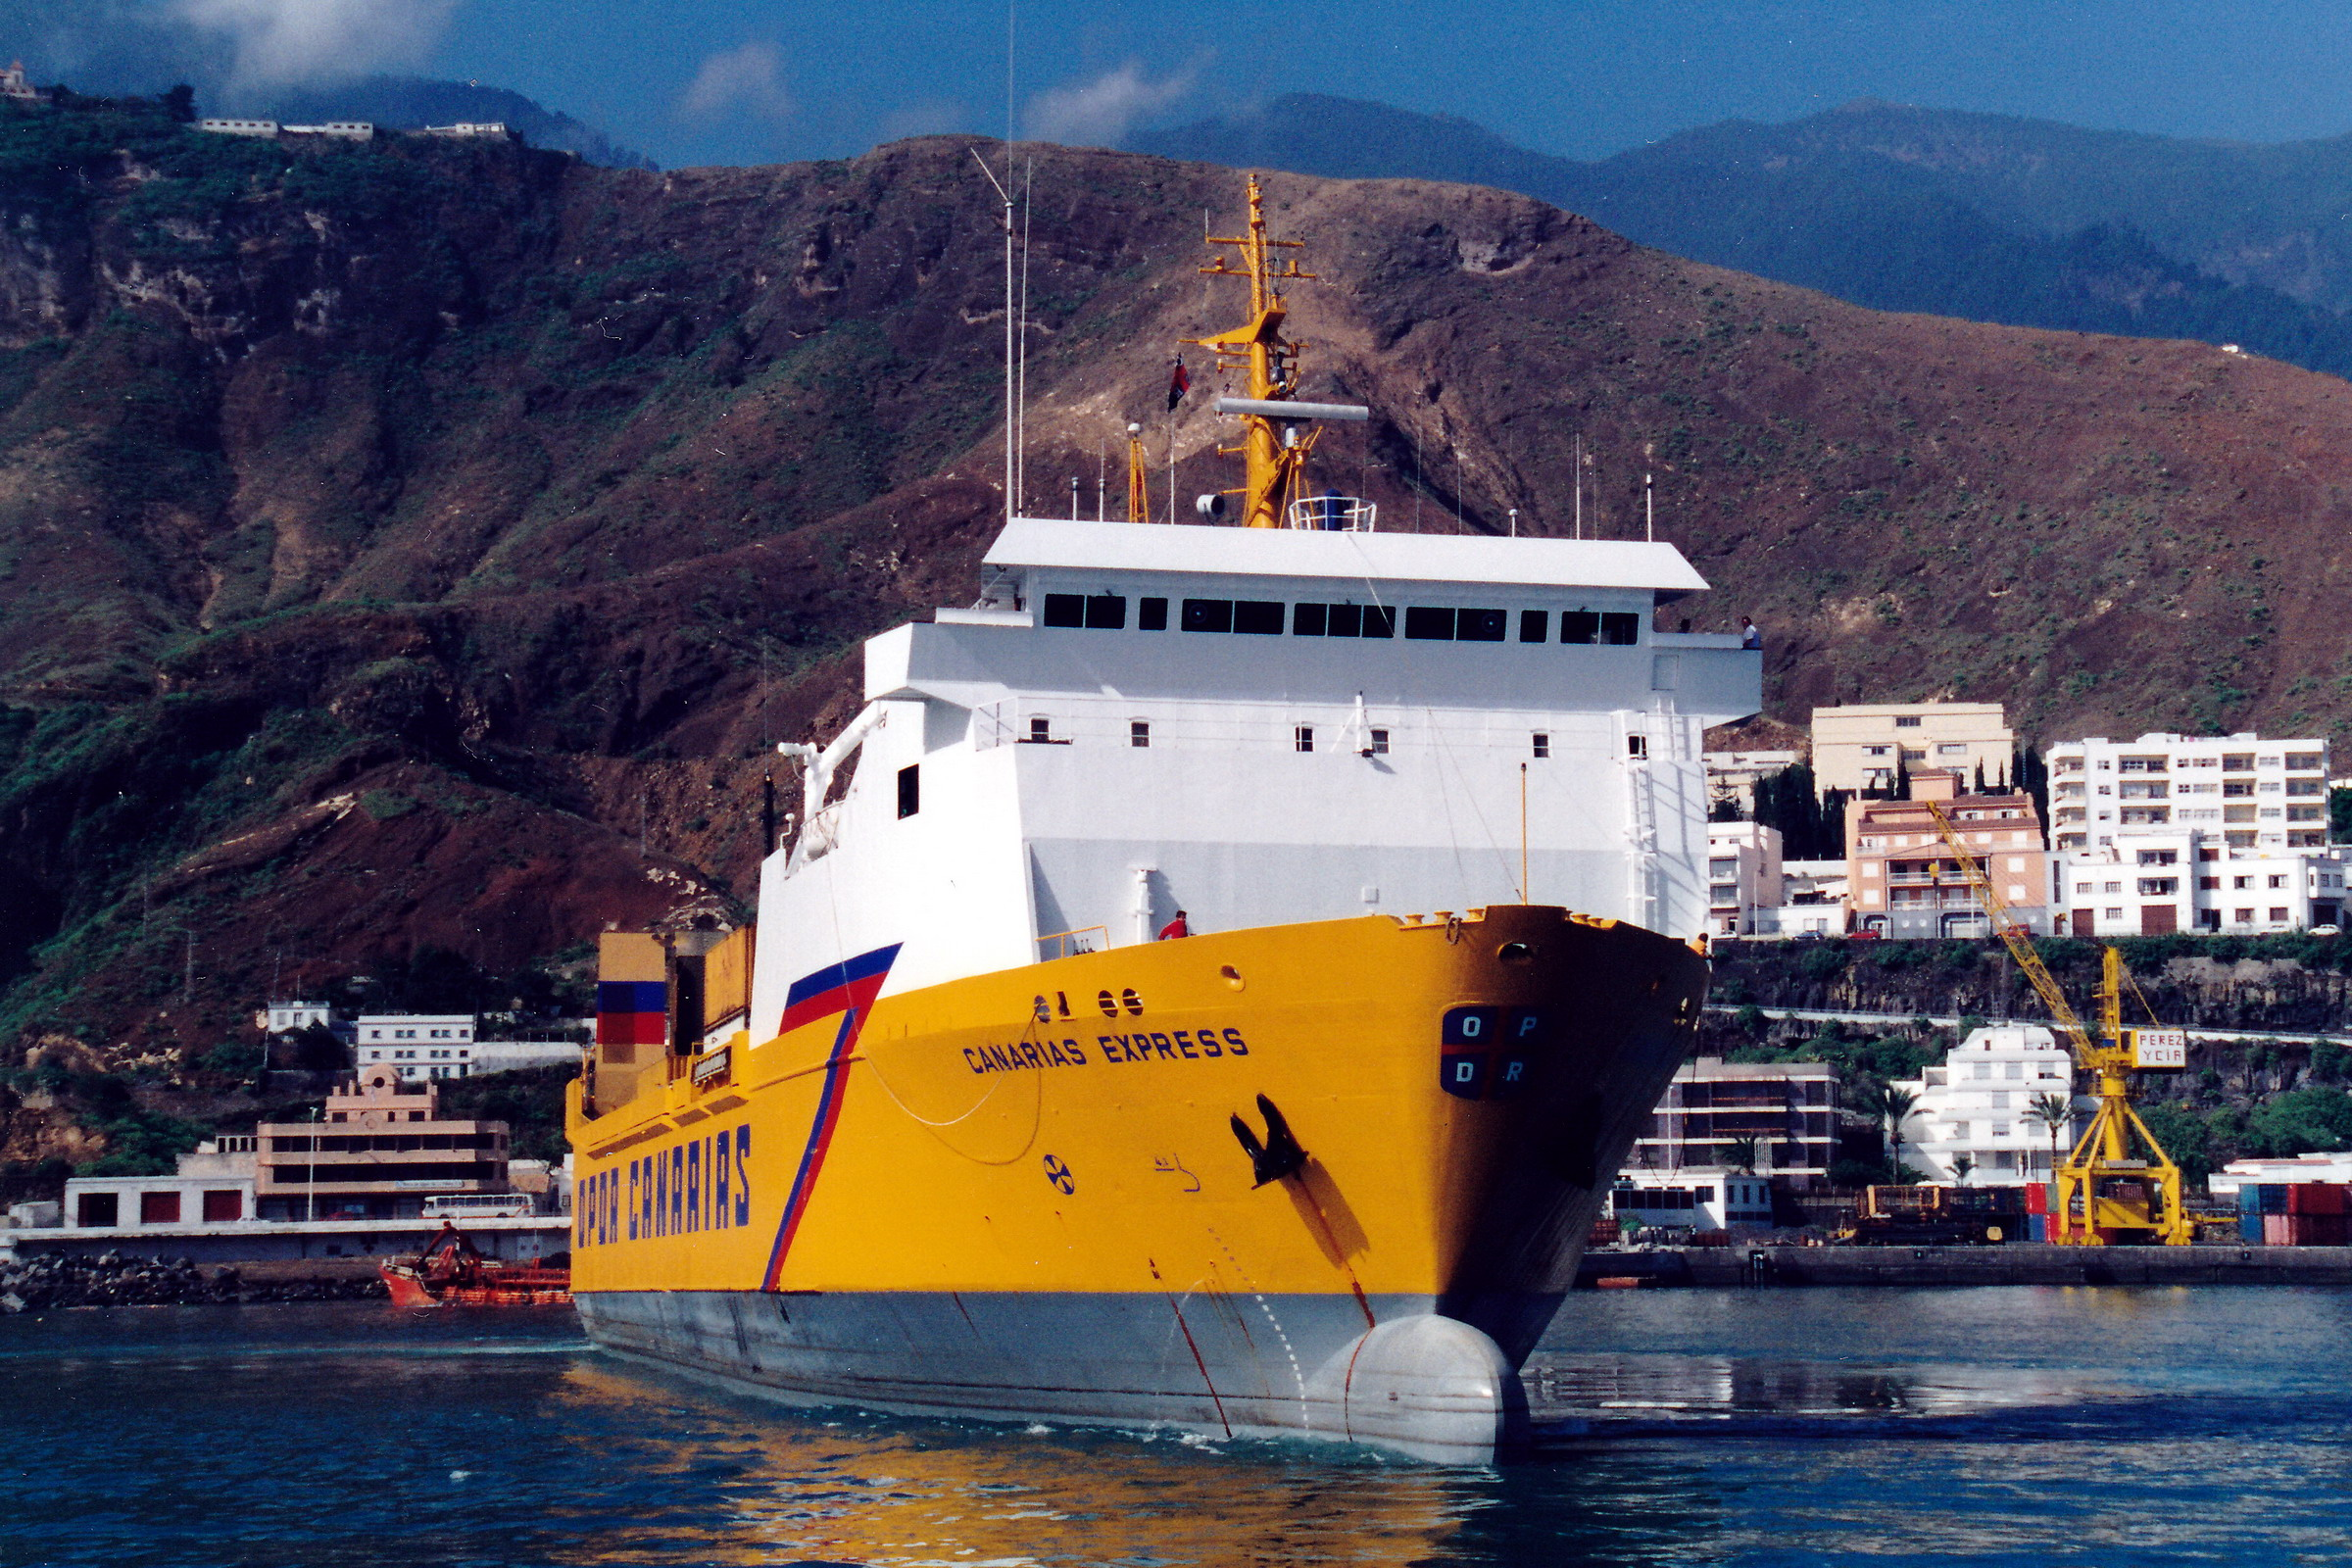 CANARIAS_EXPRESS_8207381_©Noray_(1)